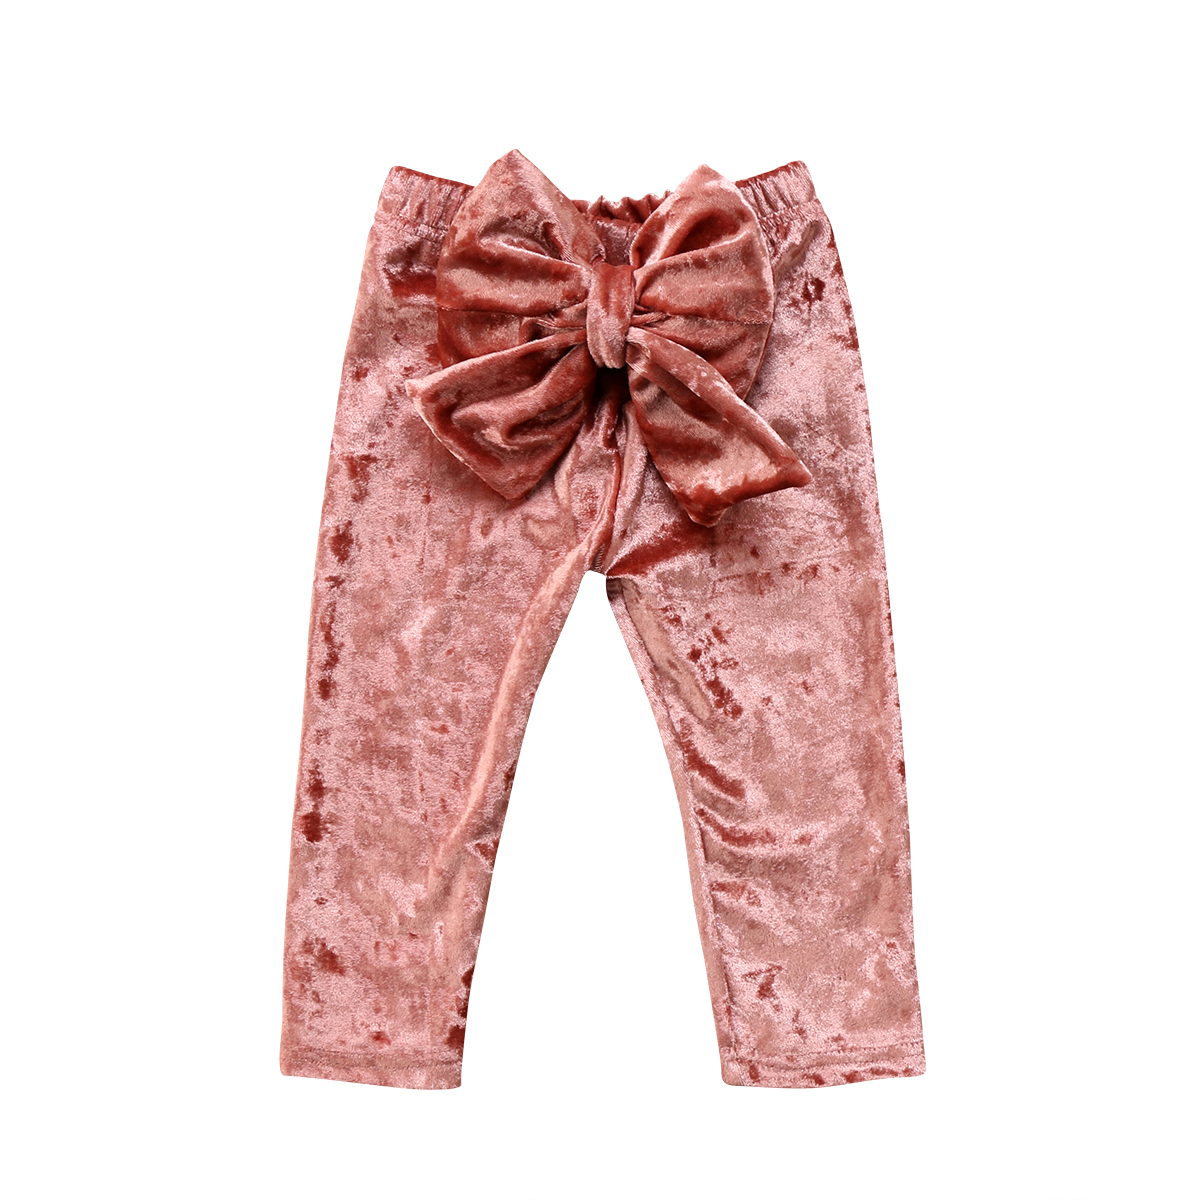 Fashion Toddler Kids Baby Girls Clothing Pants Bowknot Warm Bow Cute Pants Clothes Girl 6M-5T cute newborn baby boy girl pant plain long pants kids grey elastic waist pants toddler kids striped bottom trouser clothes